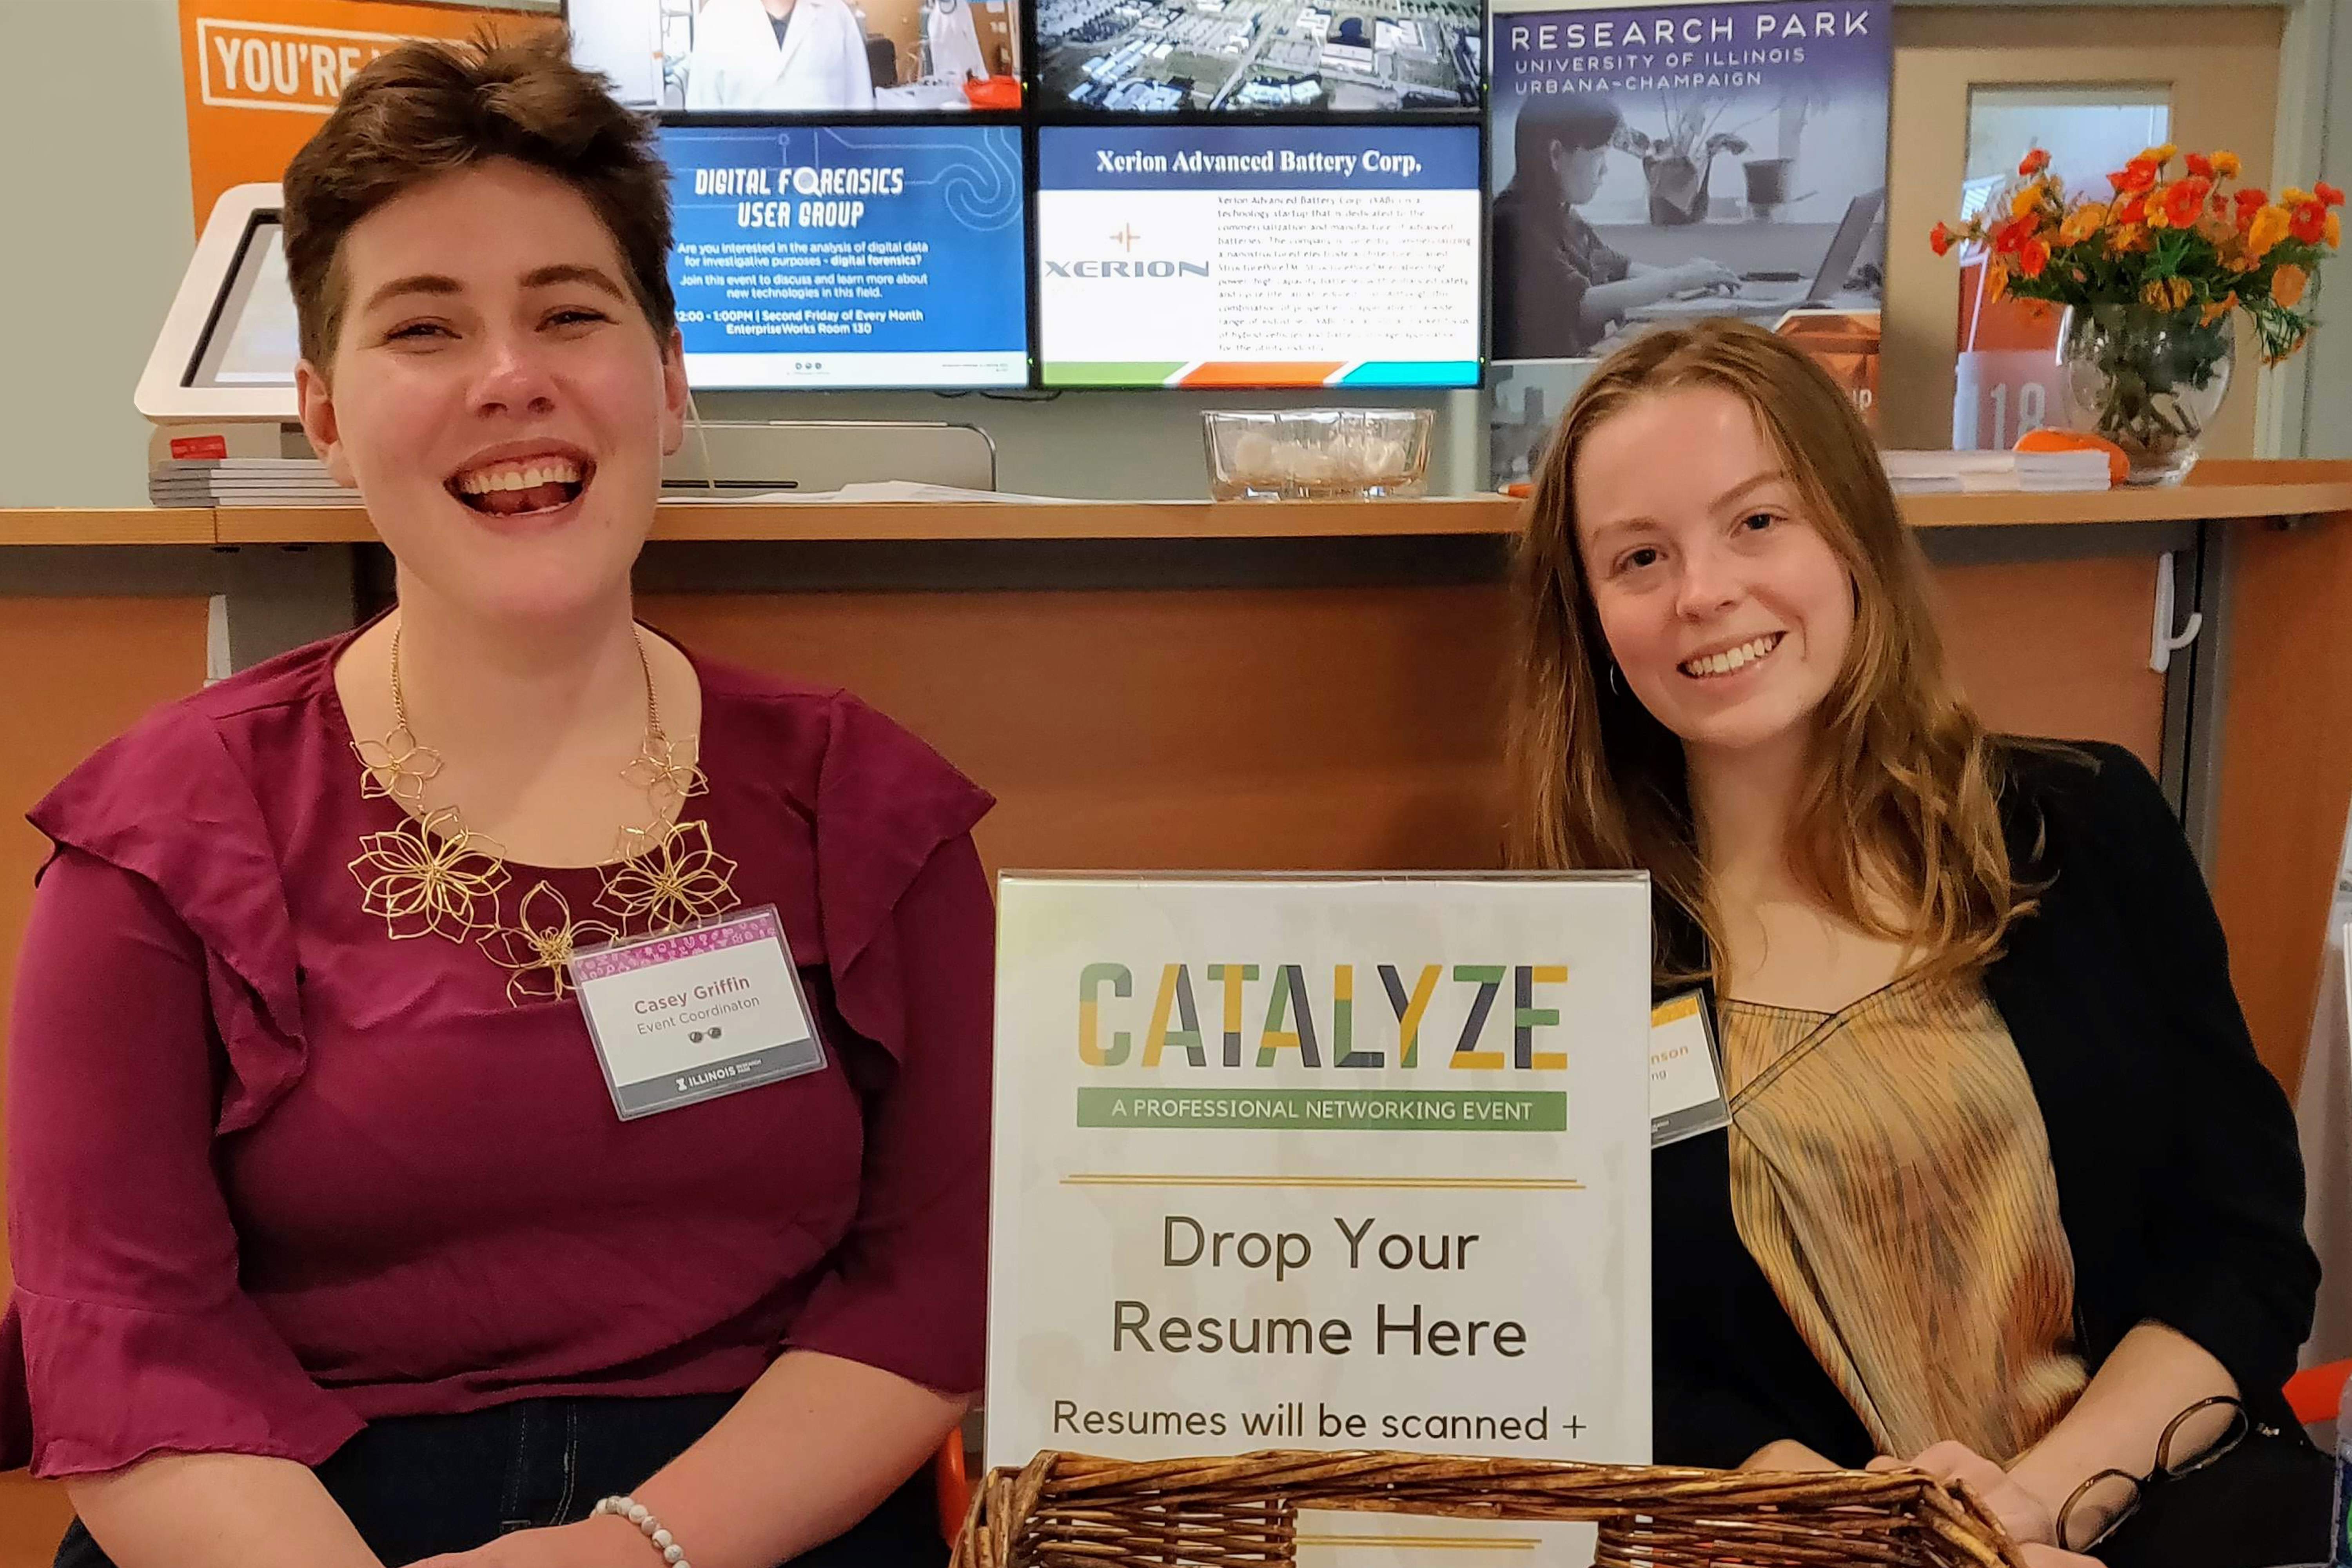 Catalyze: A Professional Networking Event 2019